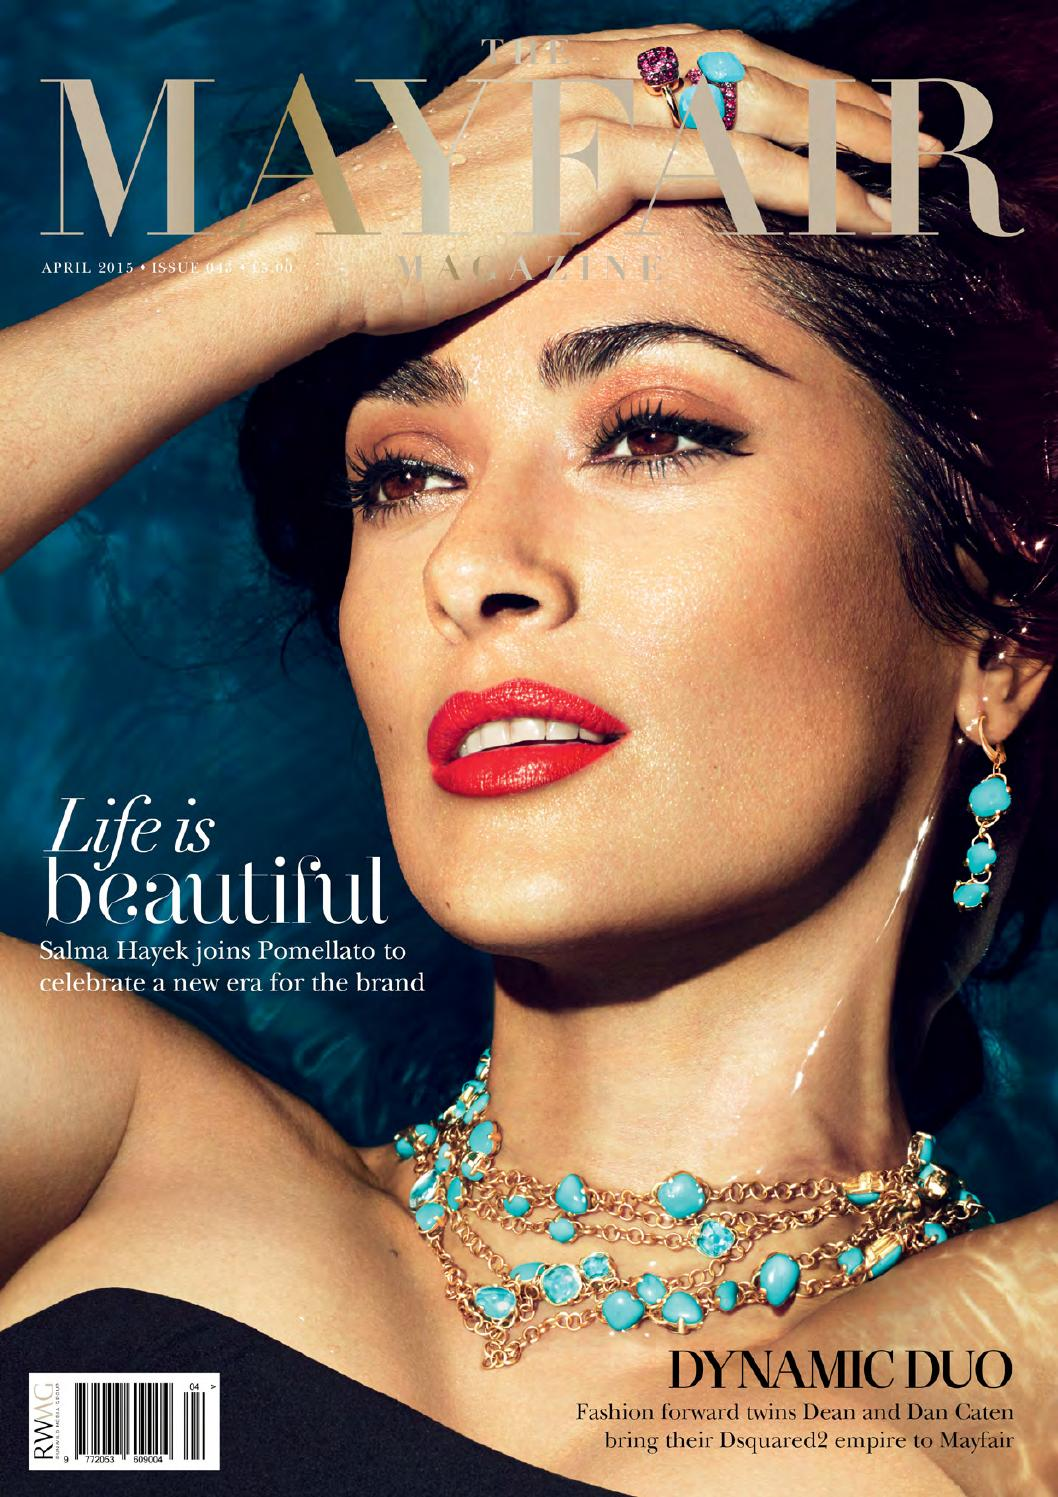 The mayfair magazine april 2015 by runwild media group issuu for The mayfair